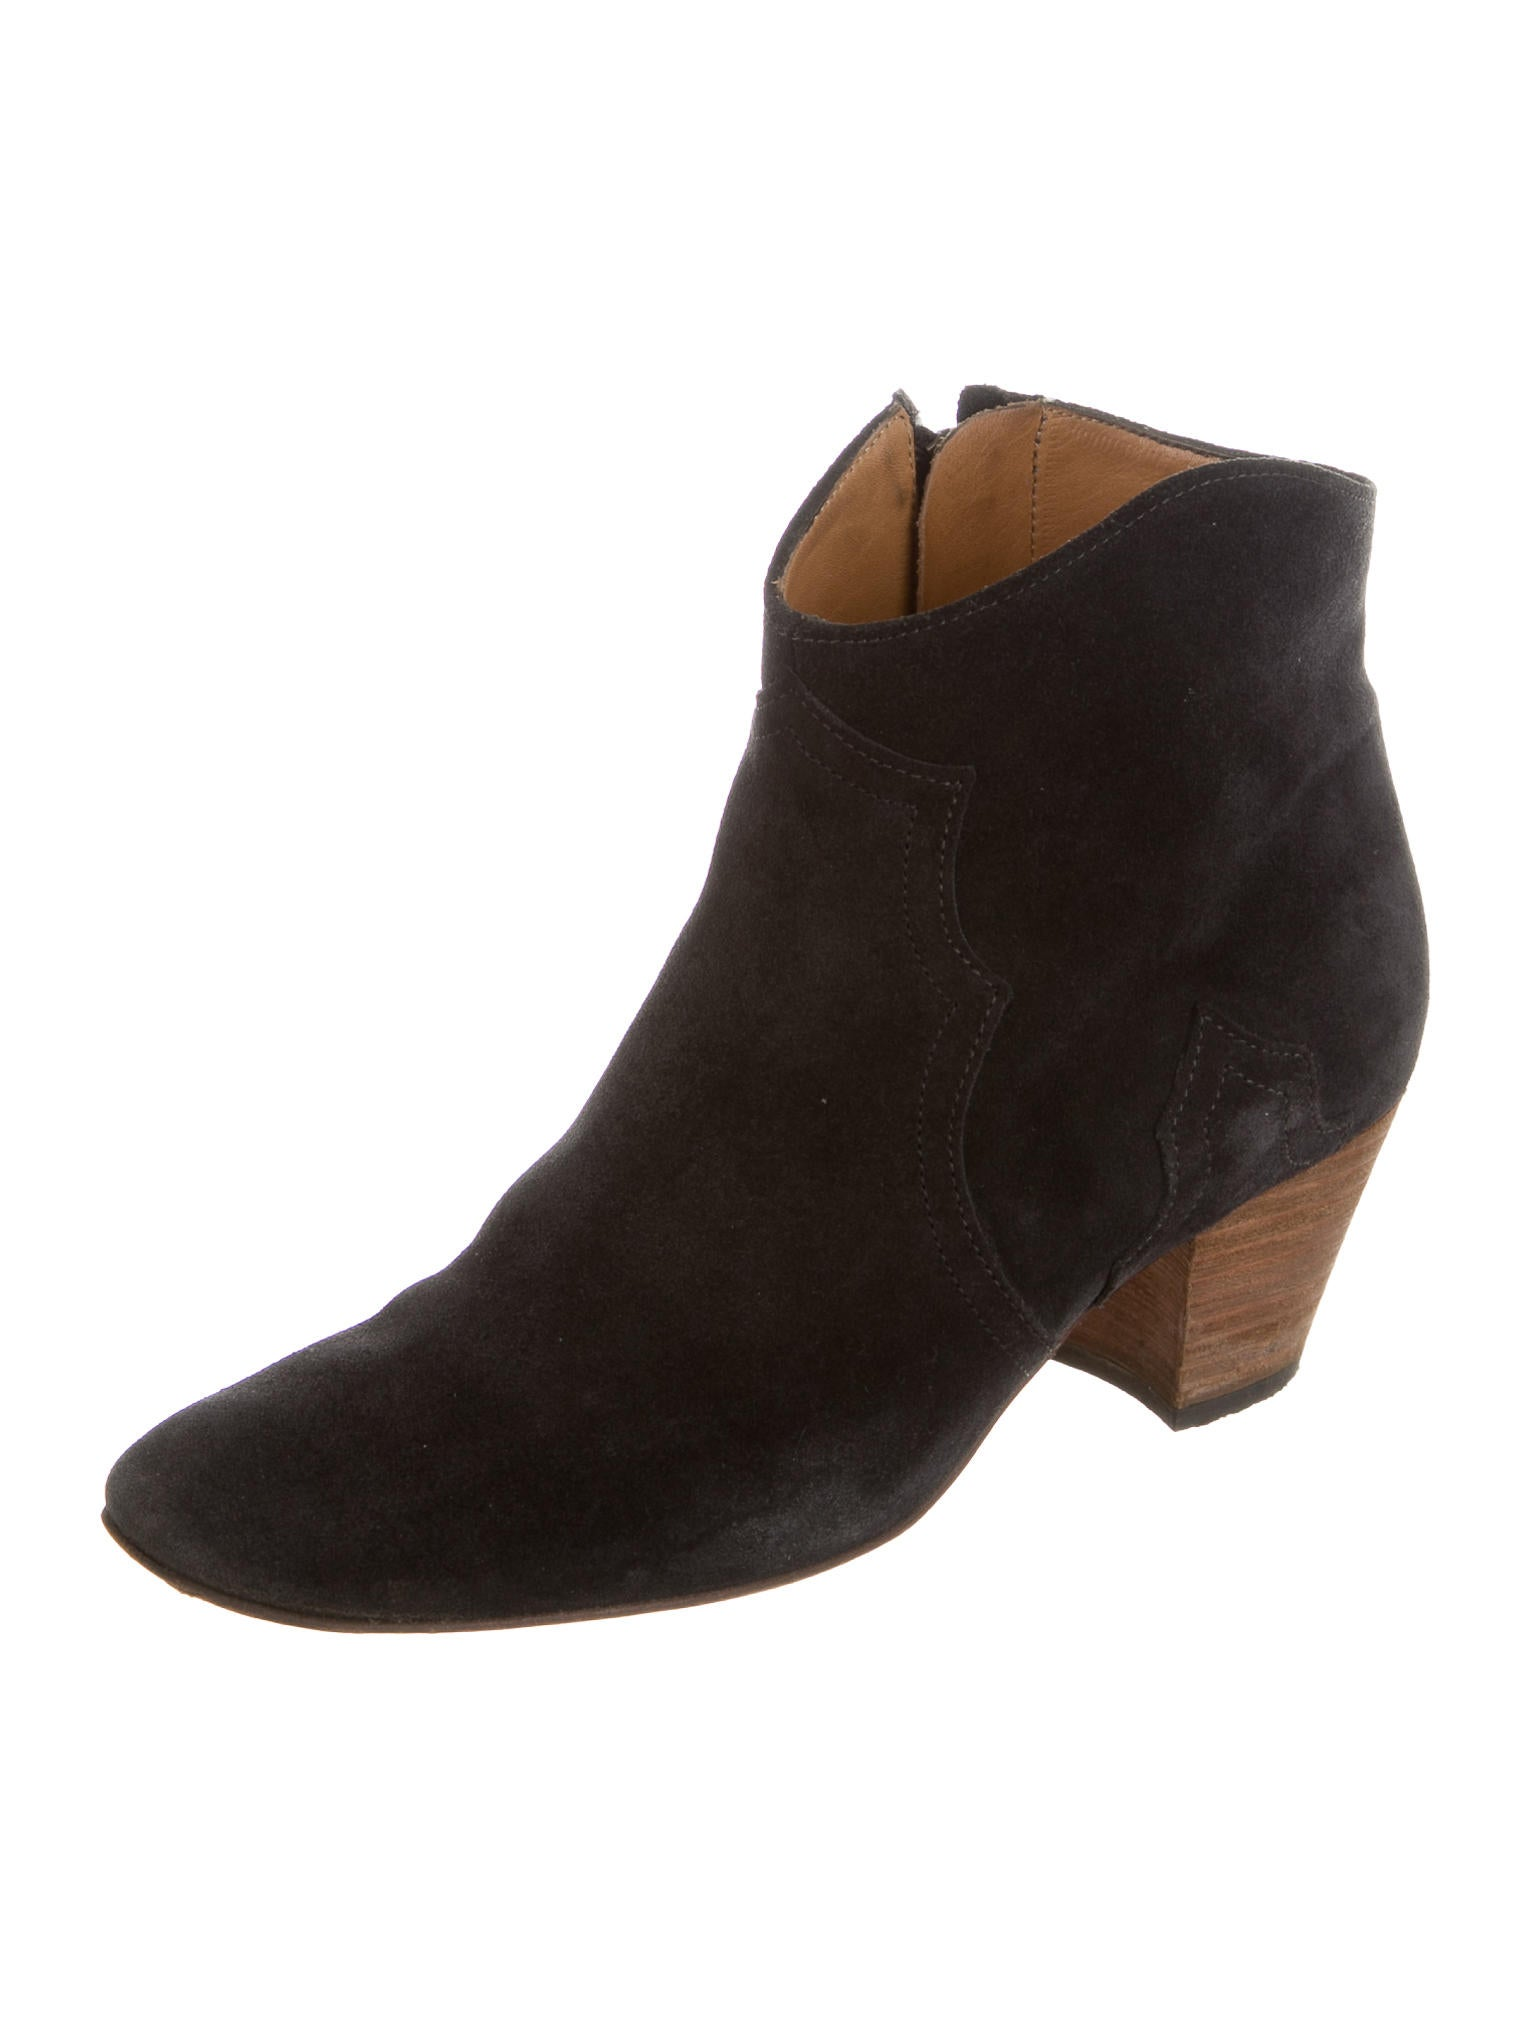 Isabel Marant Suede Dicker Booties - Shoes